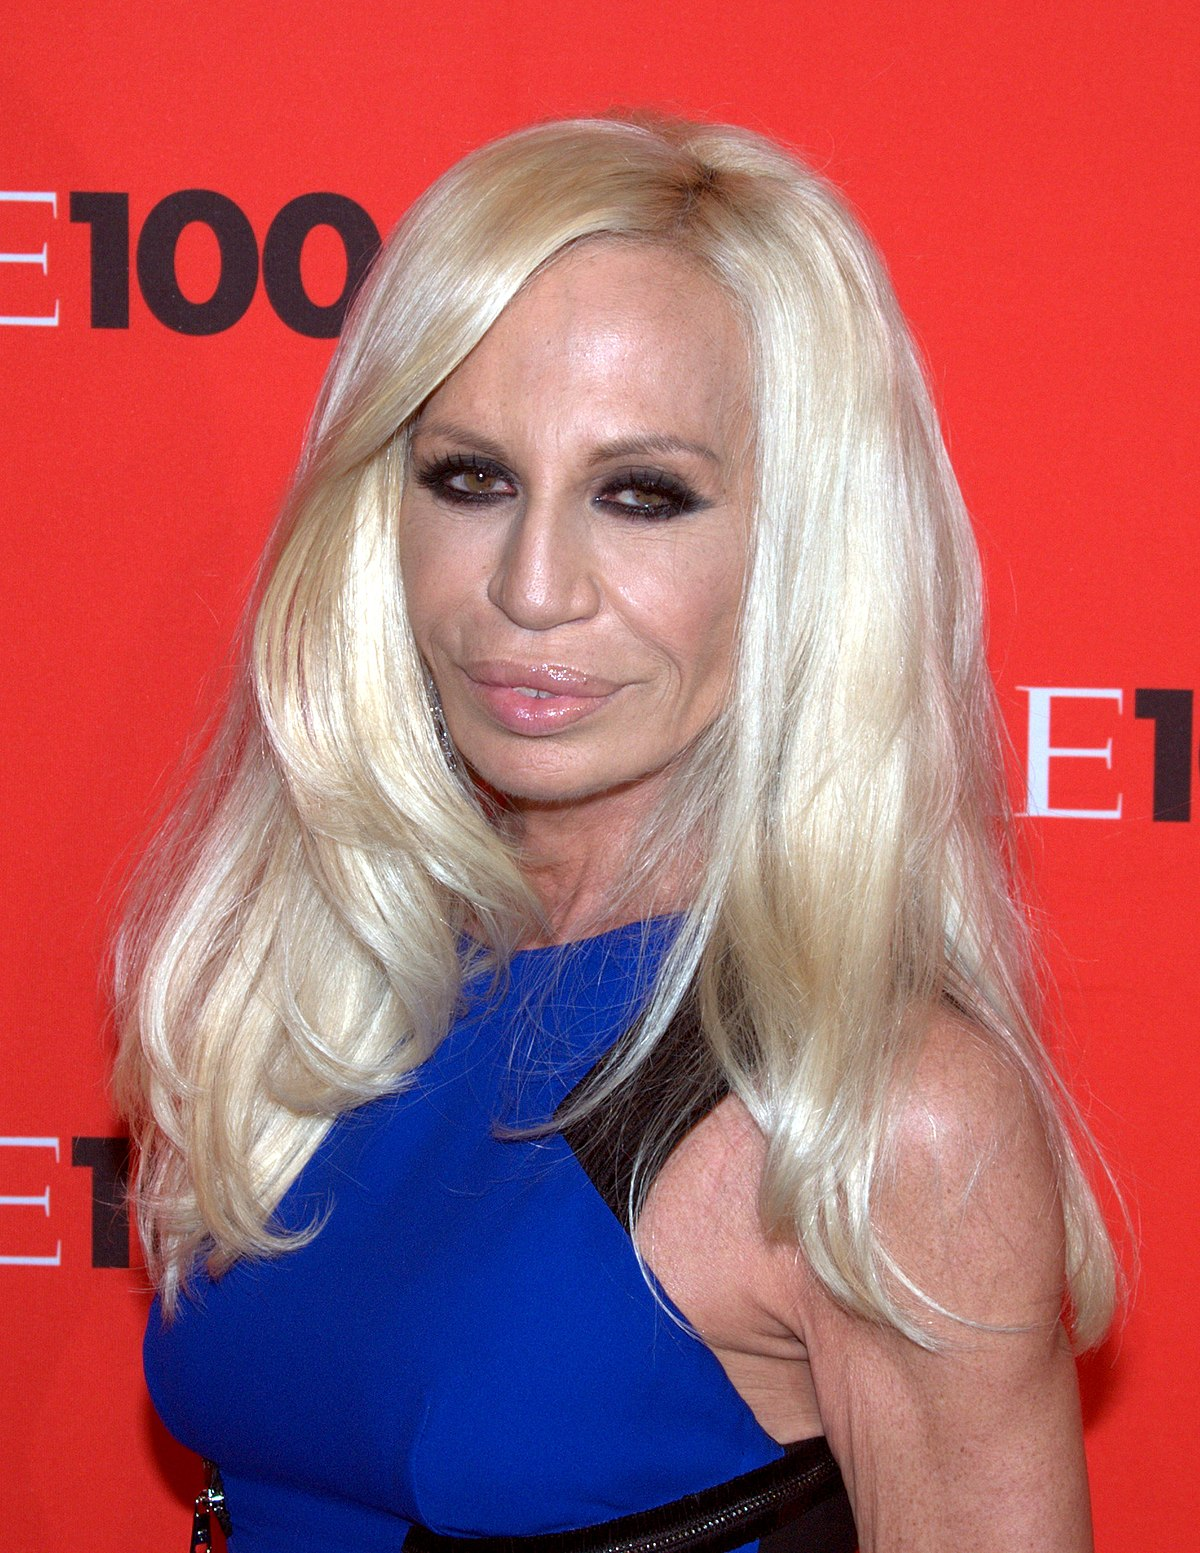 Donatella Versace Young Worth